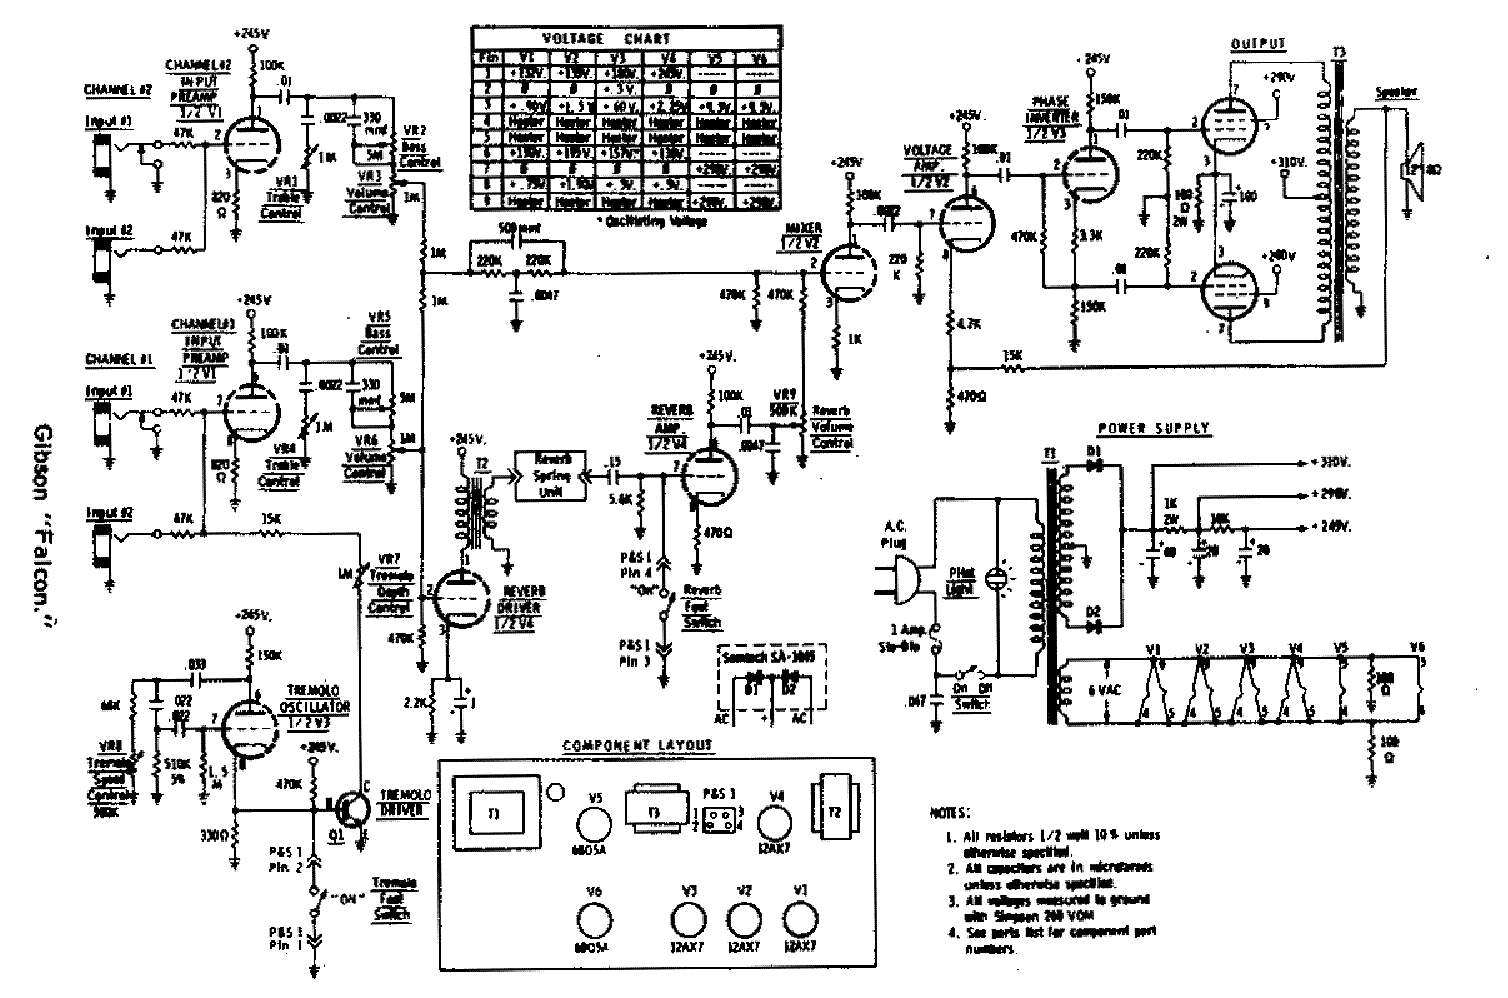 gibson gibsonette later schematic service manual download